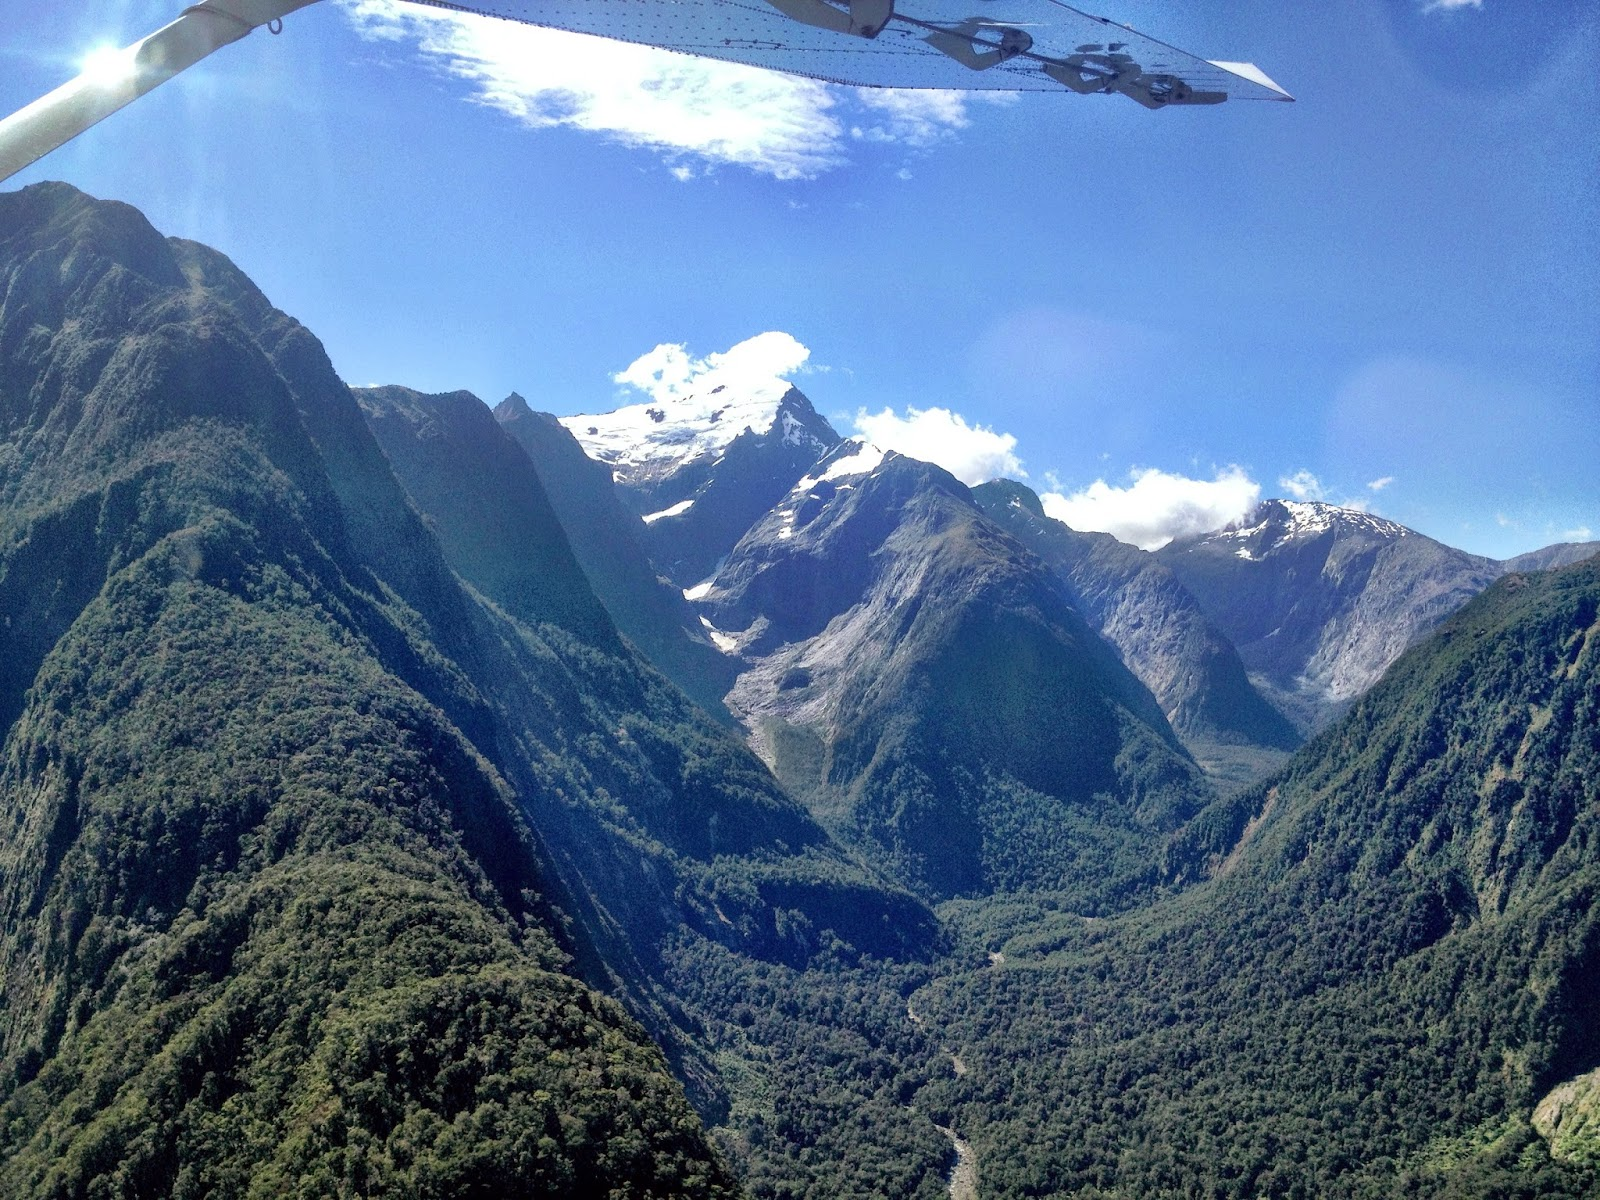 View from the plane - Milford Sound, Fiordland, New Zealand